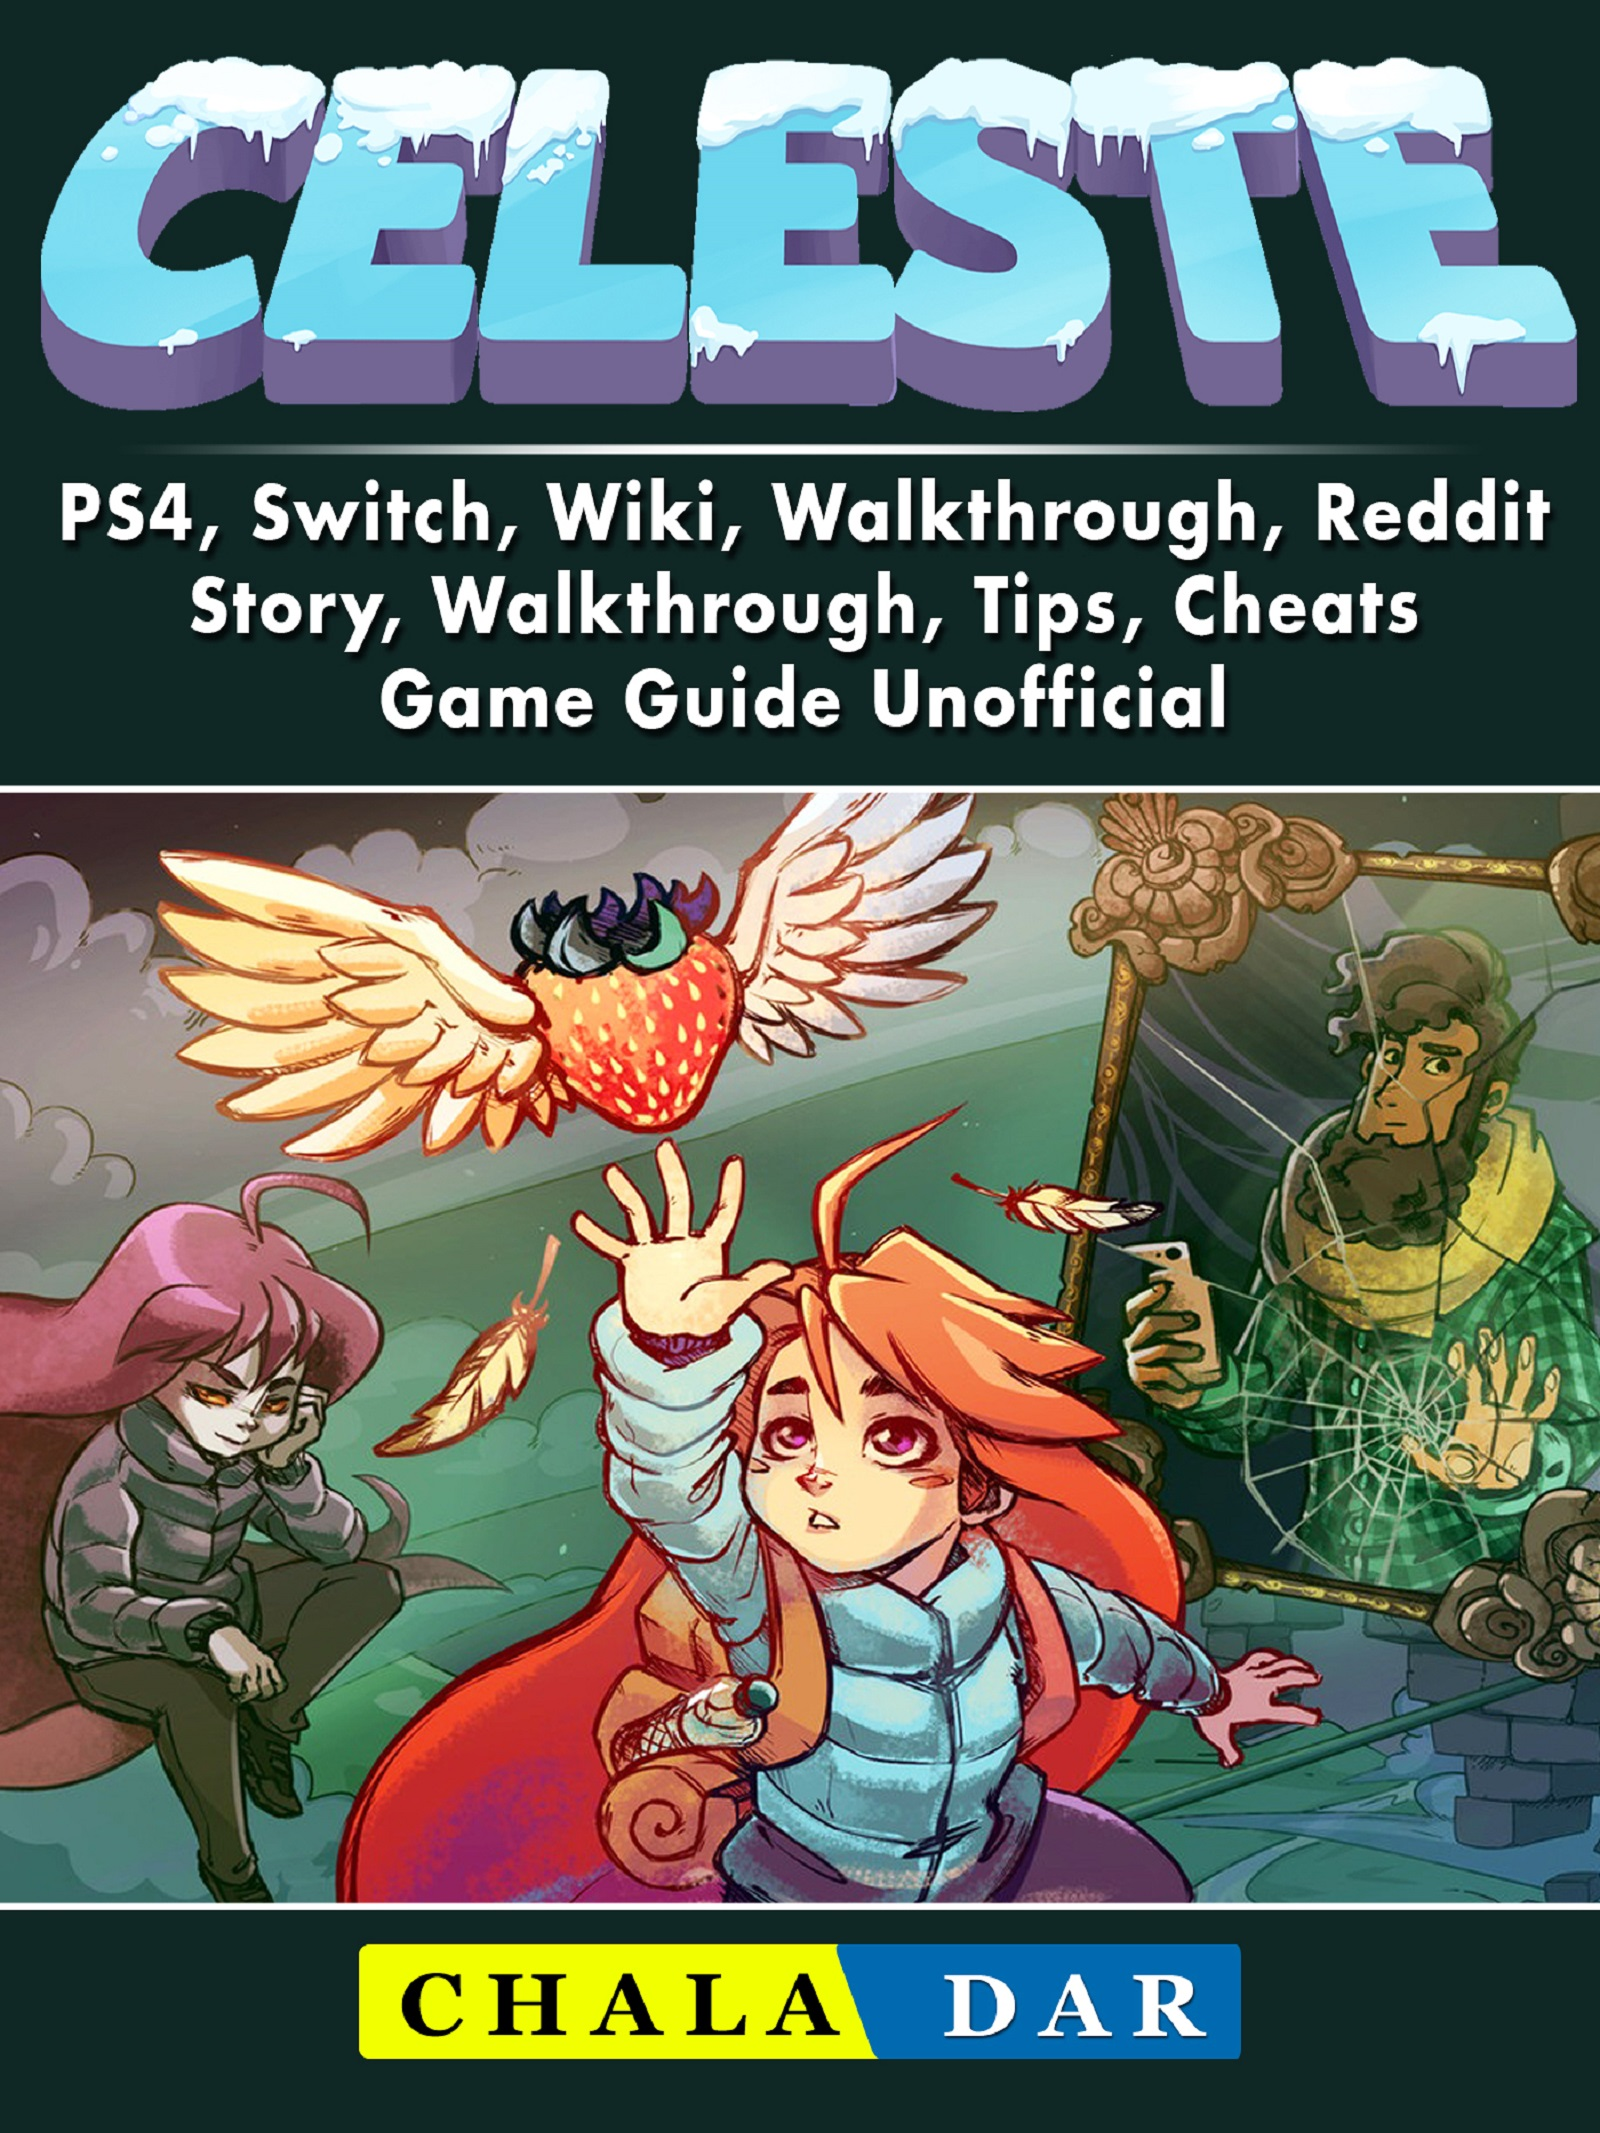 Celeste, PS4, Switch, Wiki, Walkthrough, Reddit, Story, Walkthrough, Tips, Cheats, Game Guide Unofficial